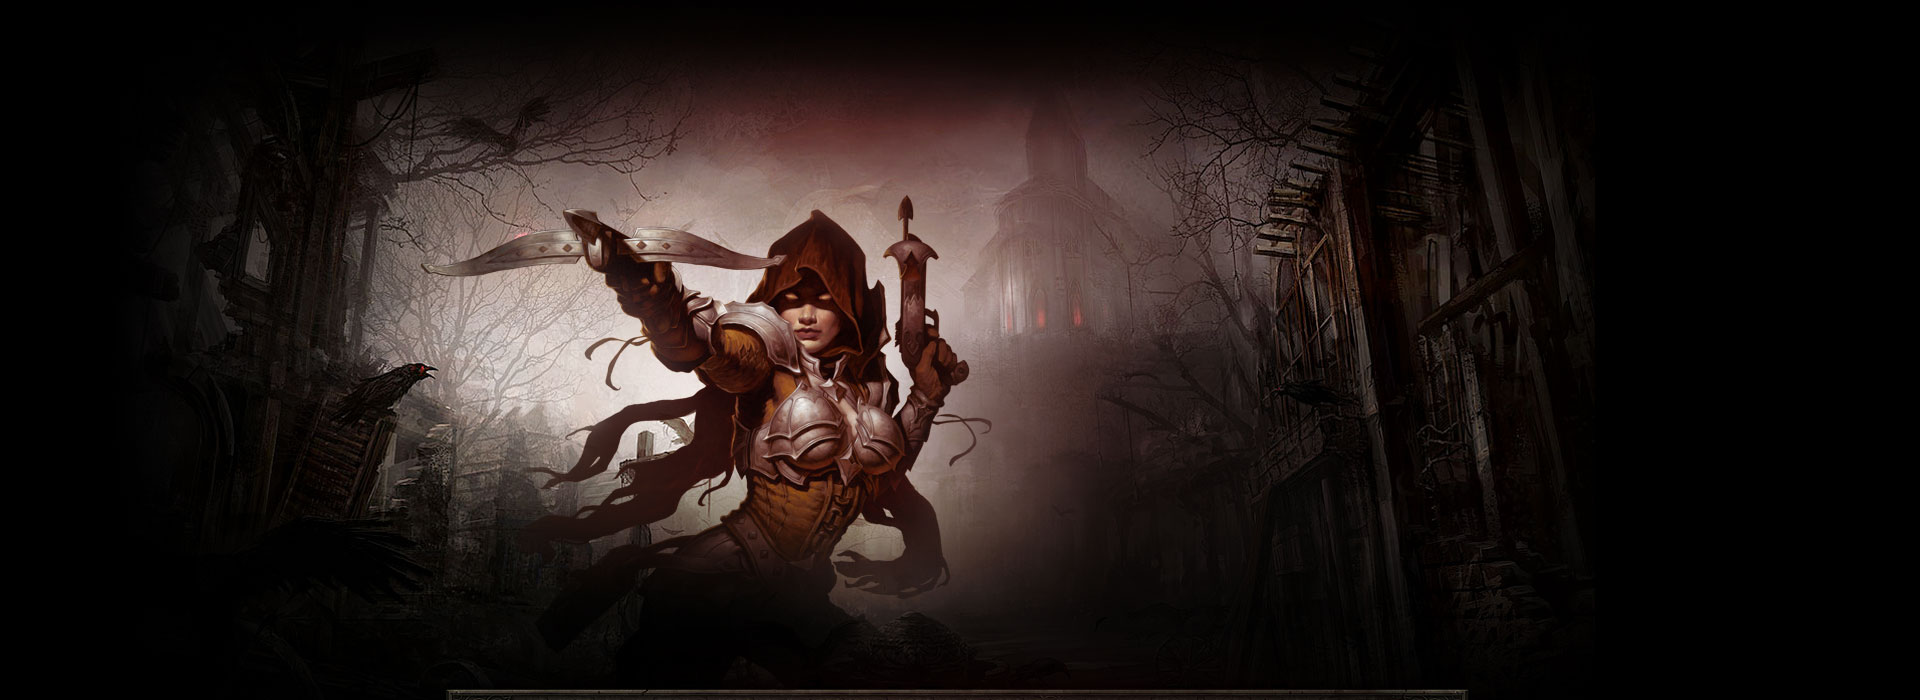 Demon Hunter (Diablo III) | Diablo Wiki | FANDOM powered by